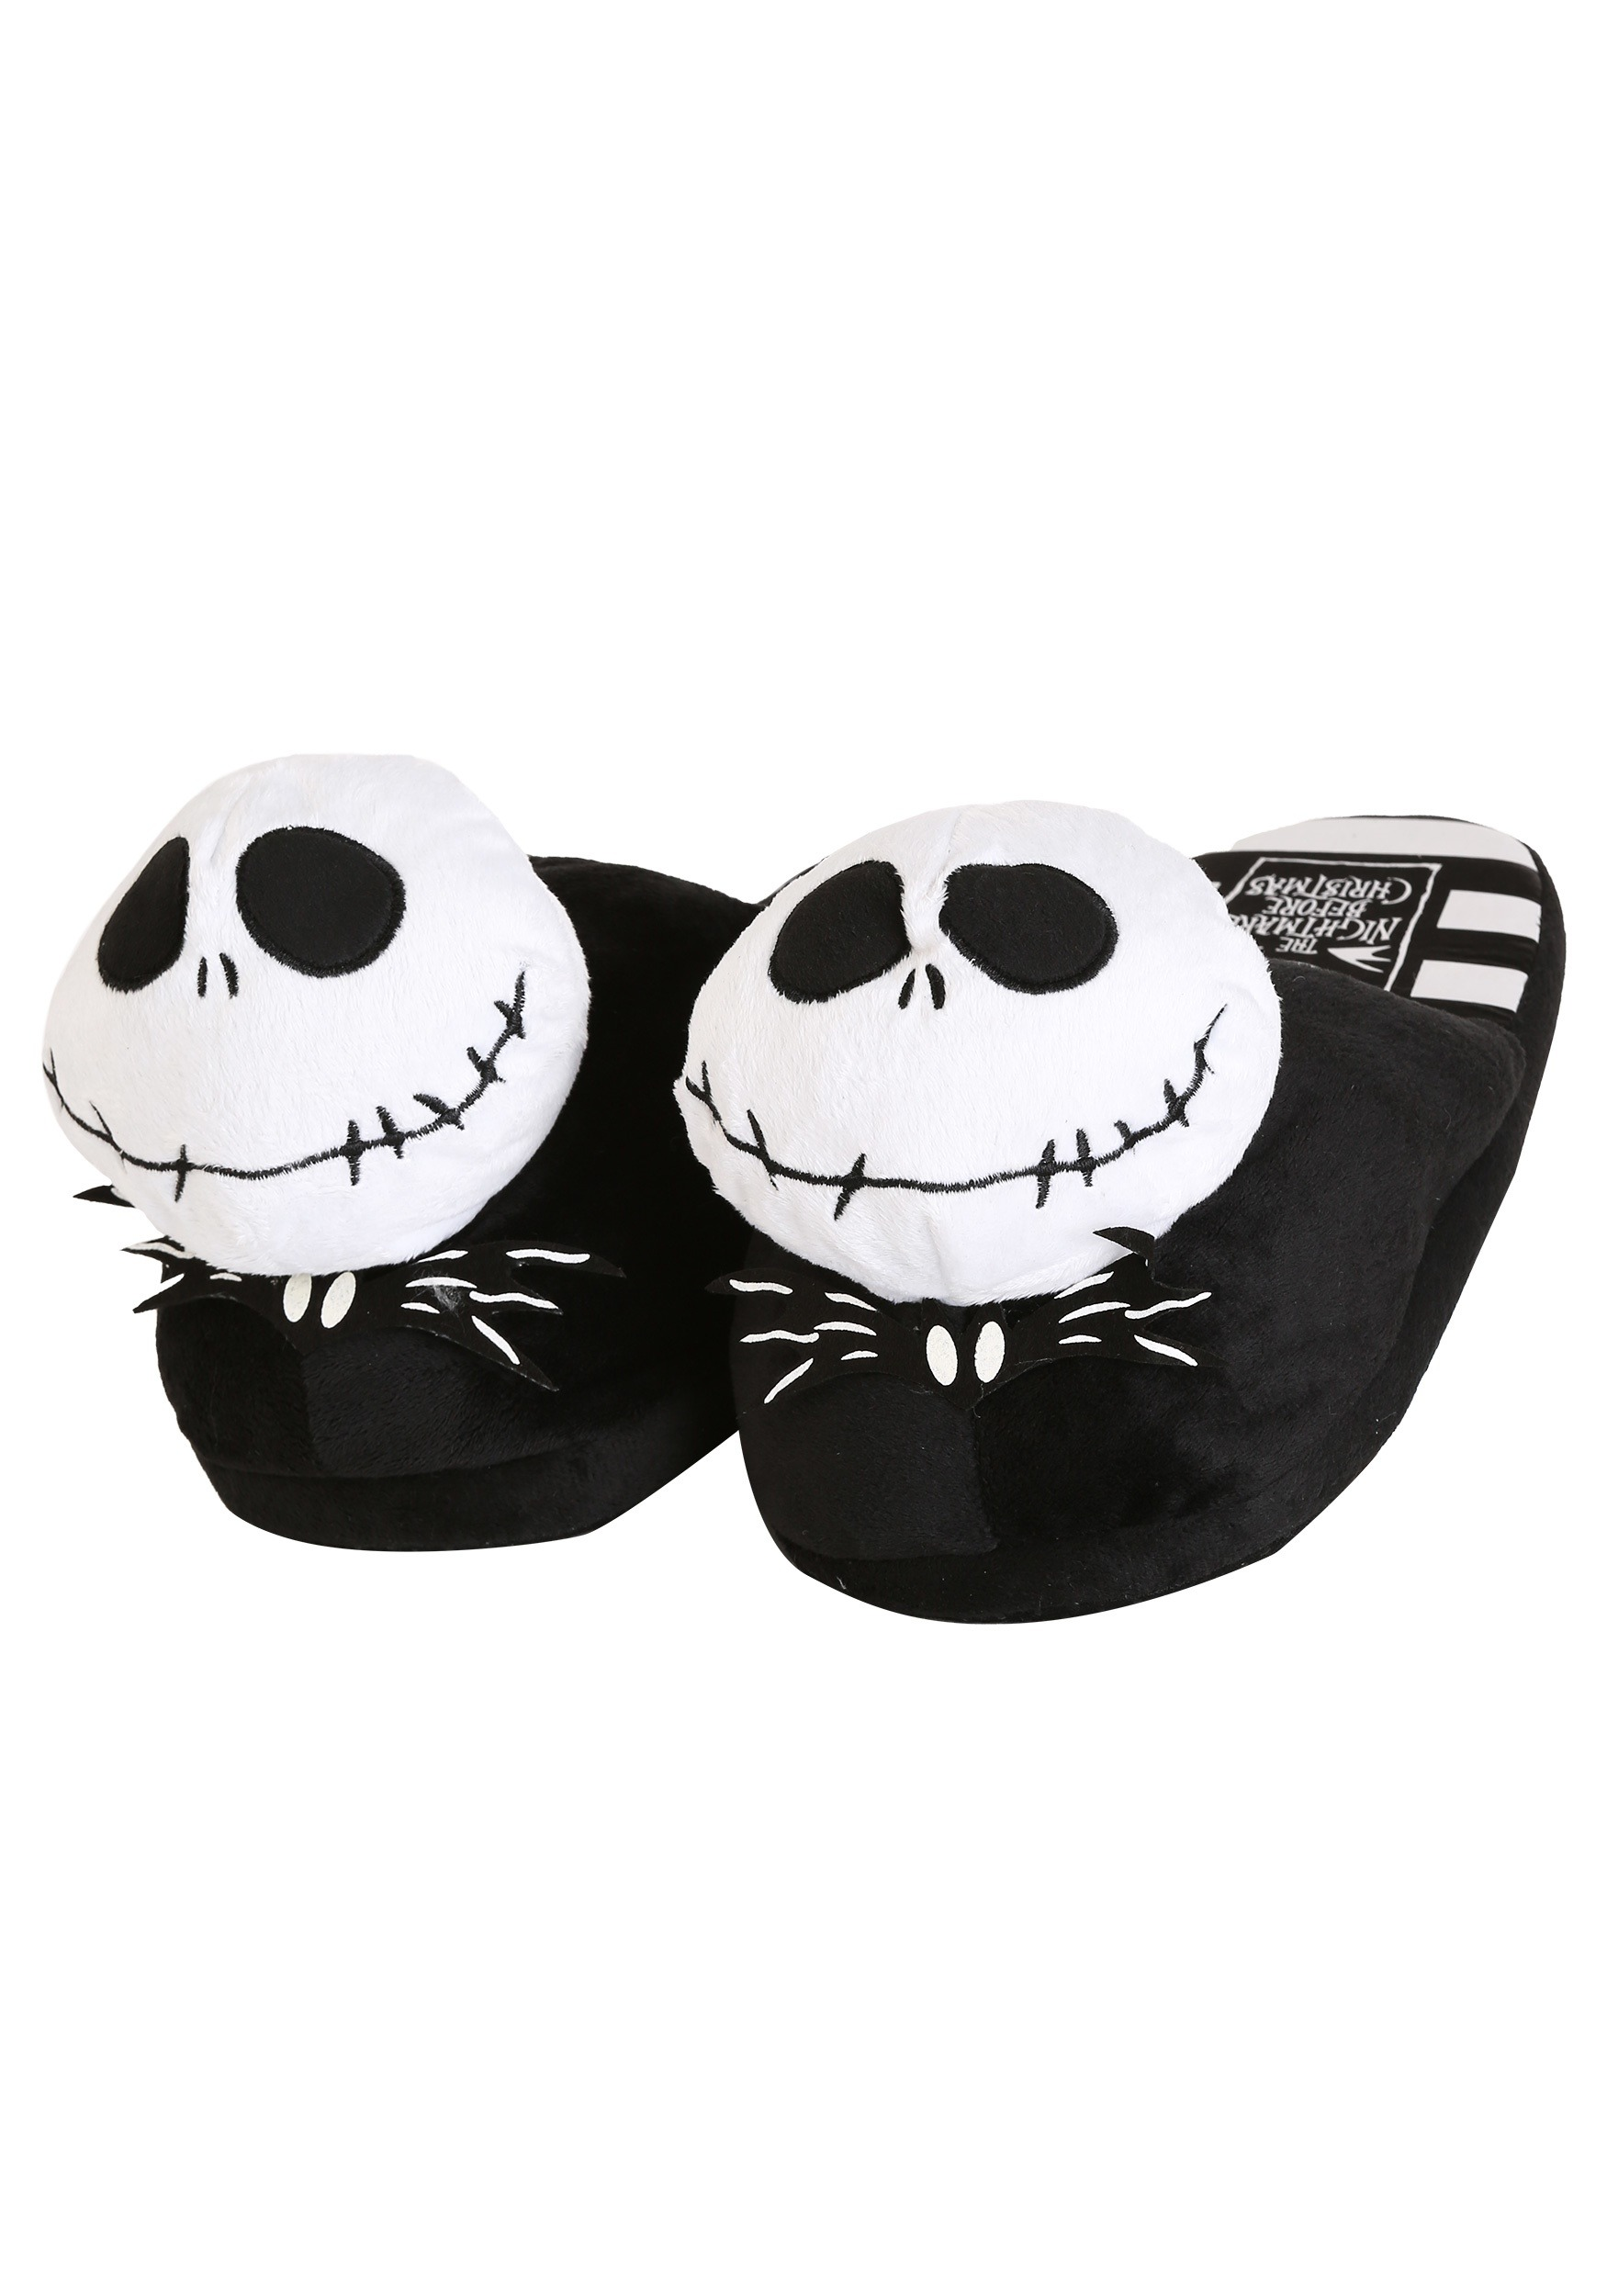 nightmare before christmas jack skellington mens slippers - Christmas Jack Skellington